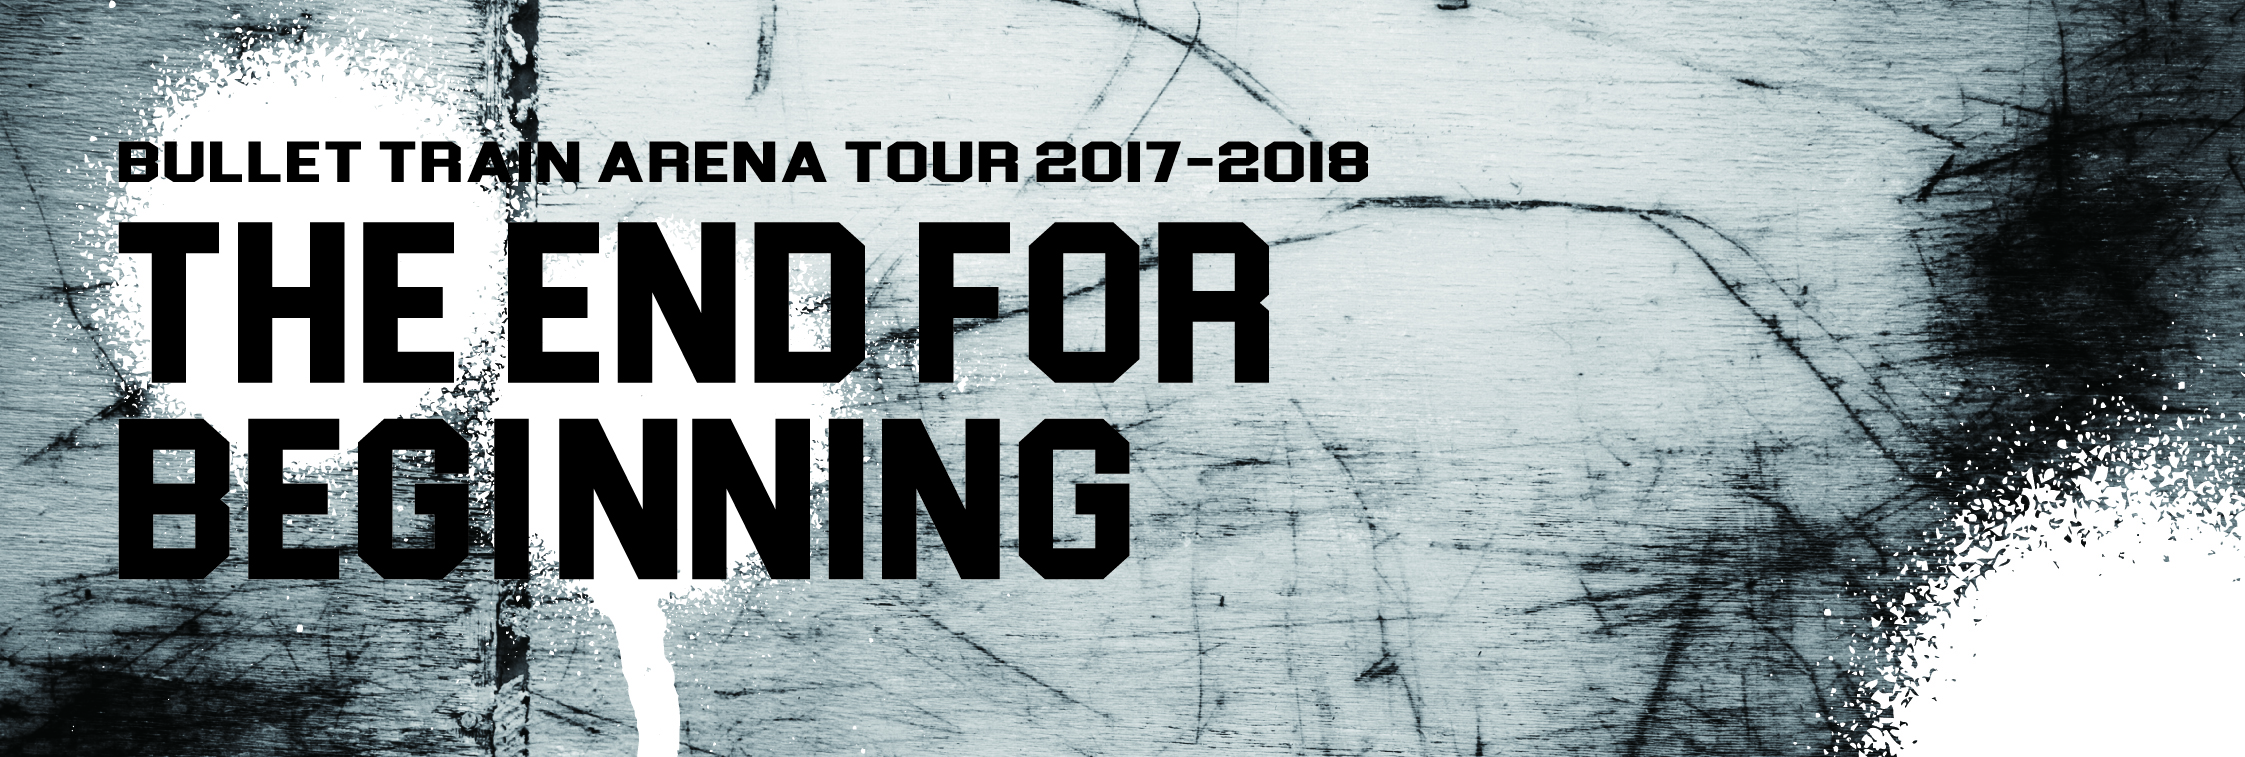 『BULLET TRAIN ARENA TOUR 2017-2018  the end for beginning』ロゴ